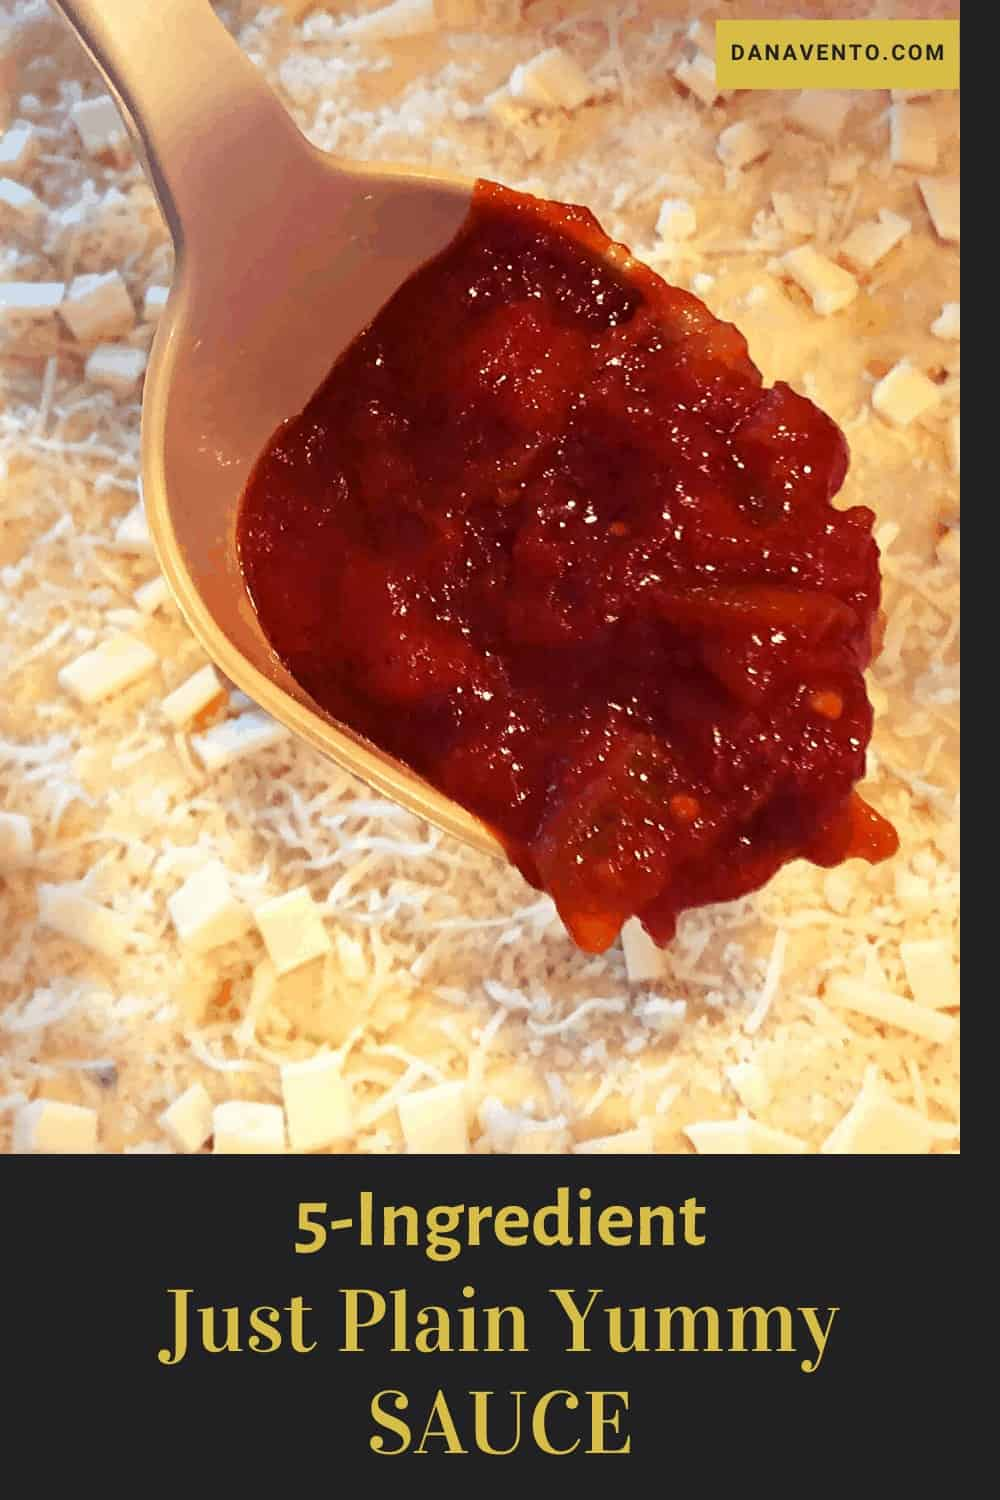 Just Plain Yummy 5-Ingredient Tomato Sauce for Sicilian Pizza